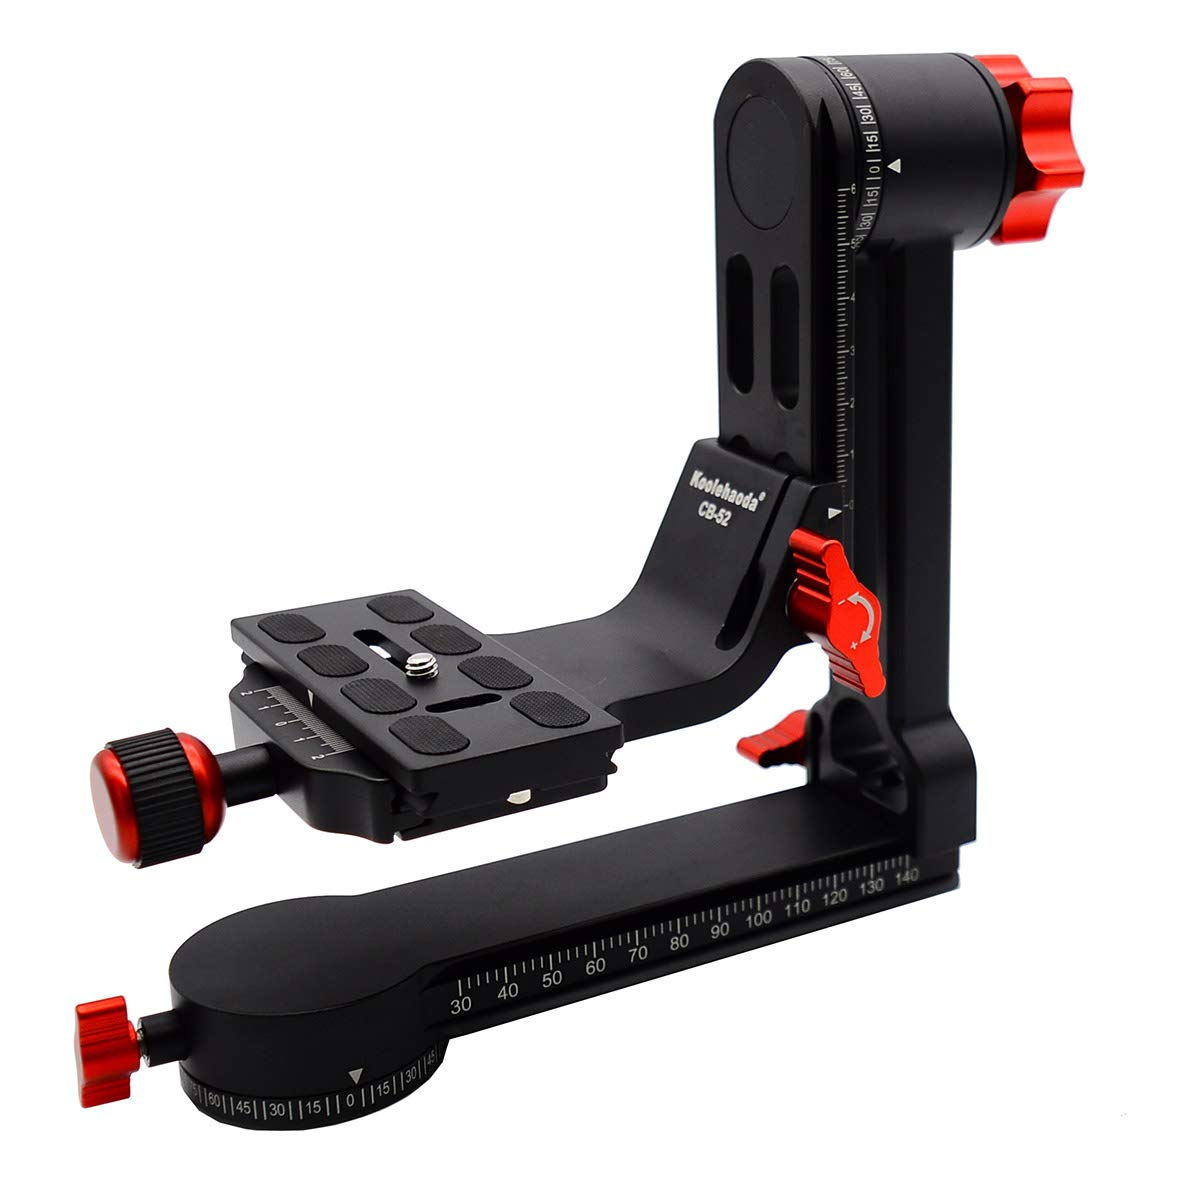 koolehaoda CB-52 Gimbal Tripod Head 360° Panoramic Head with 100mm Quick Release Plate Carry Bag (CB-52 Panoramic Head) by koolehaoda (Image #3)